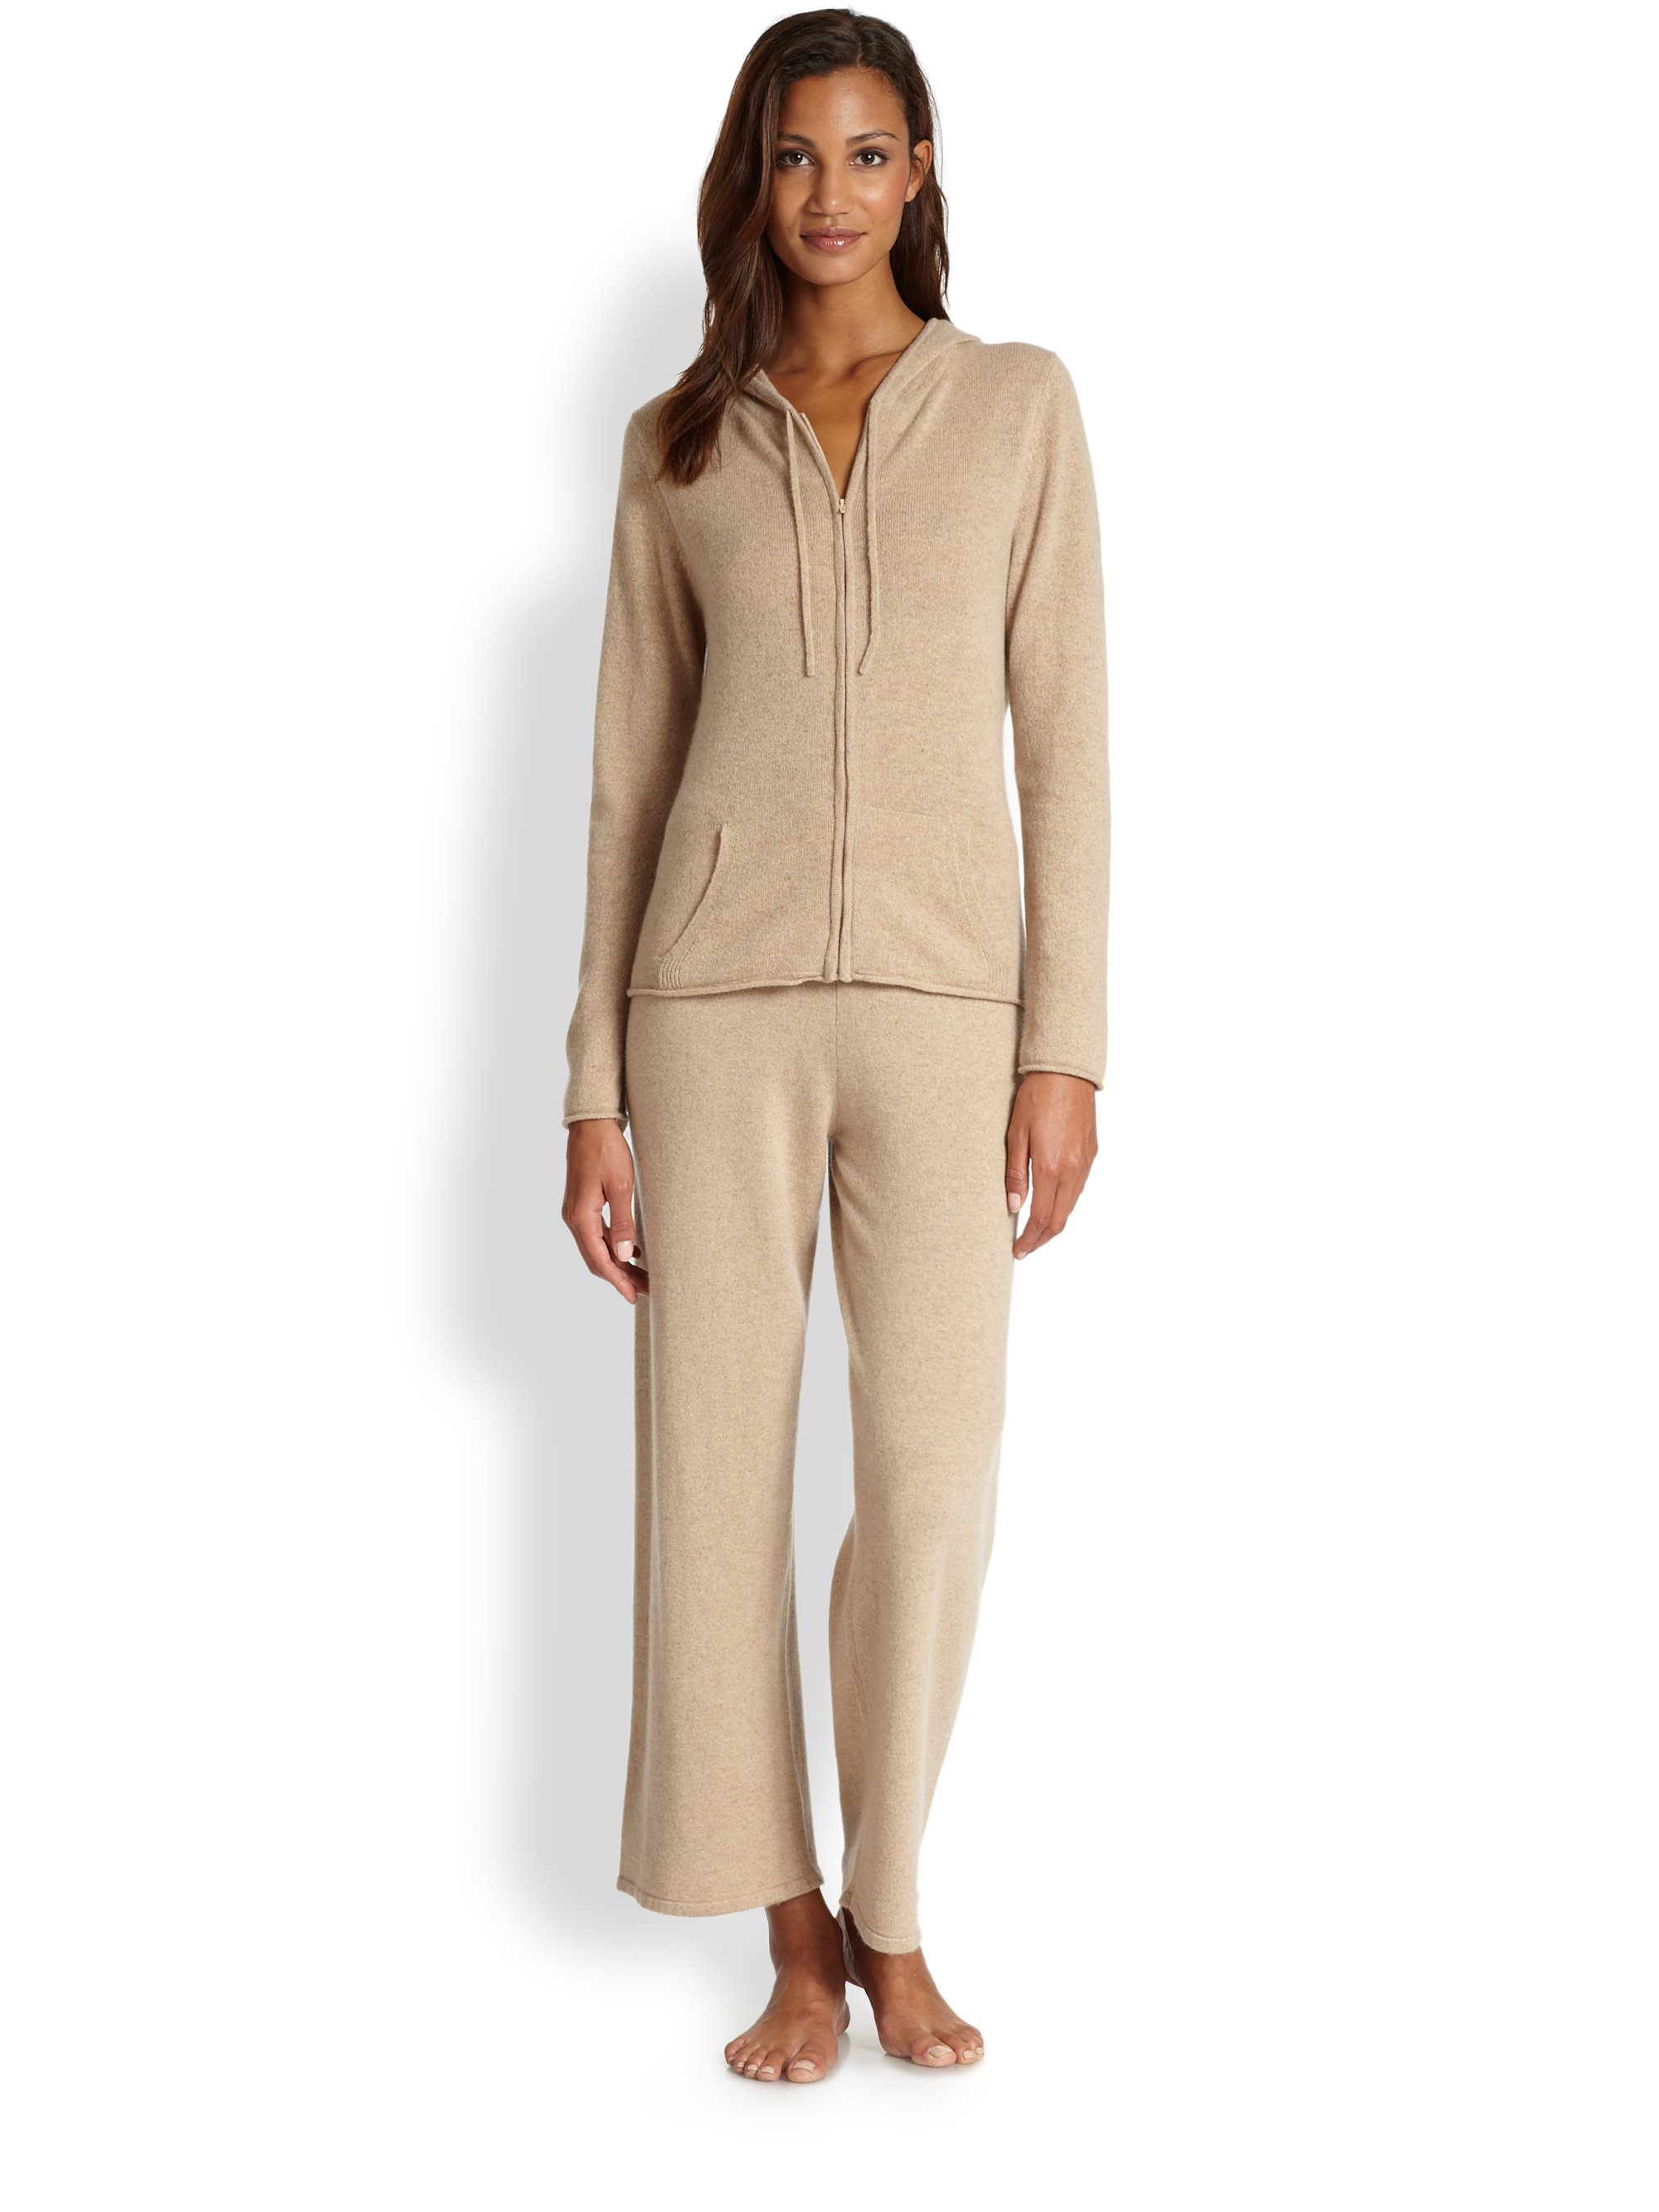 198d5a373910 Lyst - Saks Fifth Avenue Cashmere Pajama Pants in Natural